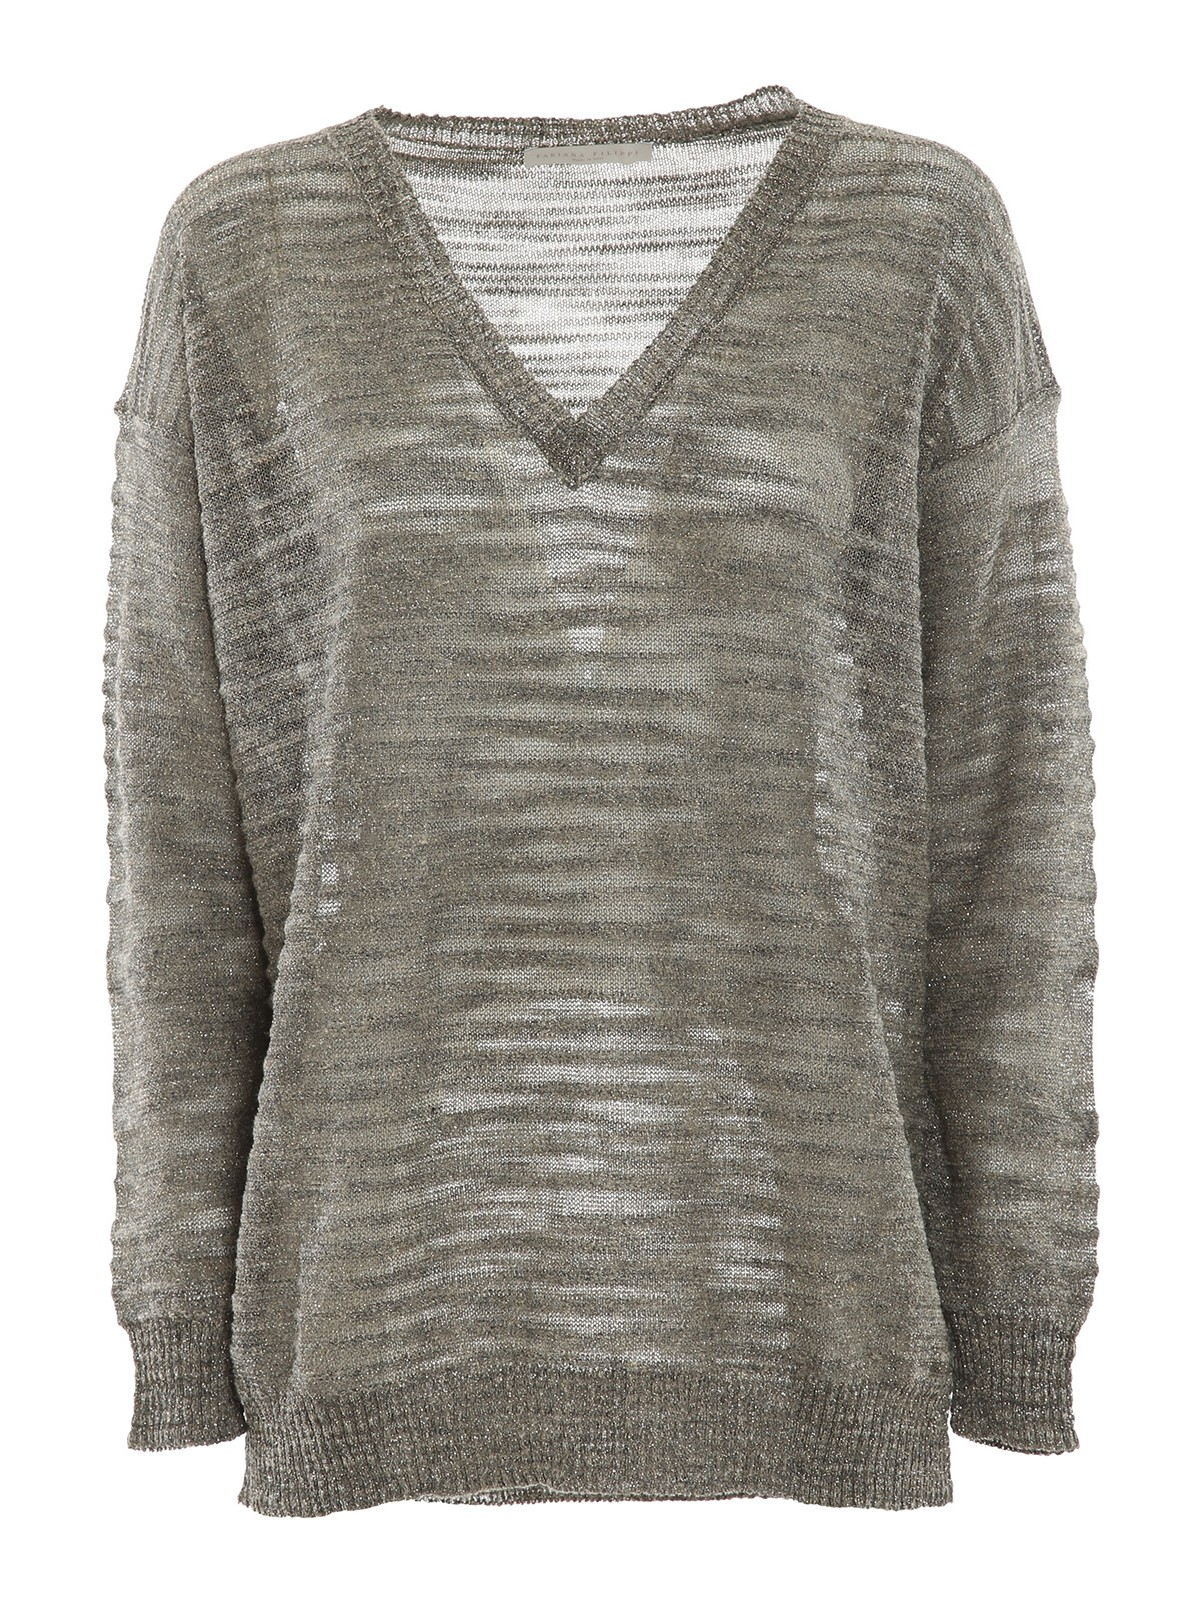 Fabiana Filippi Knits LUREX-KNIT V NECK JUMPER